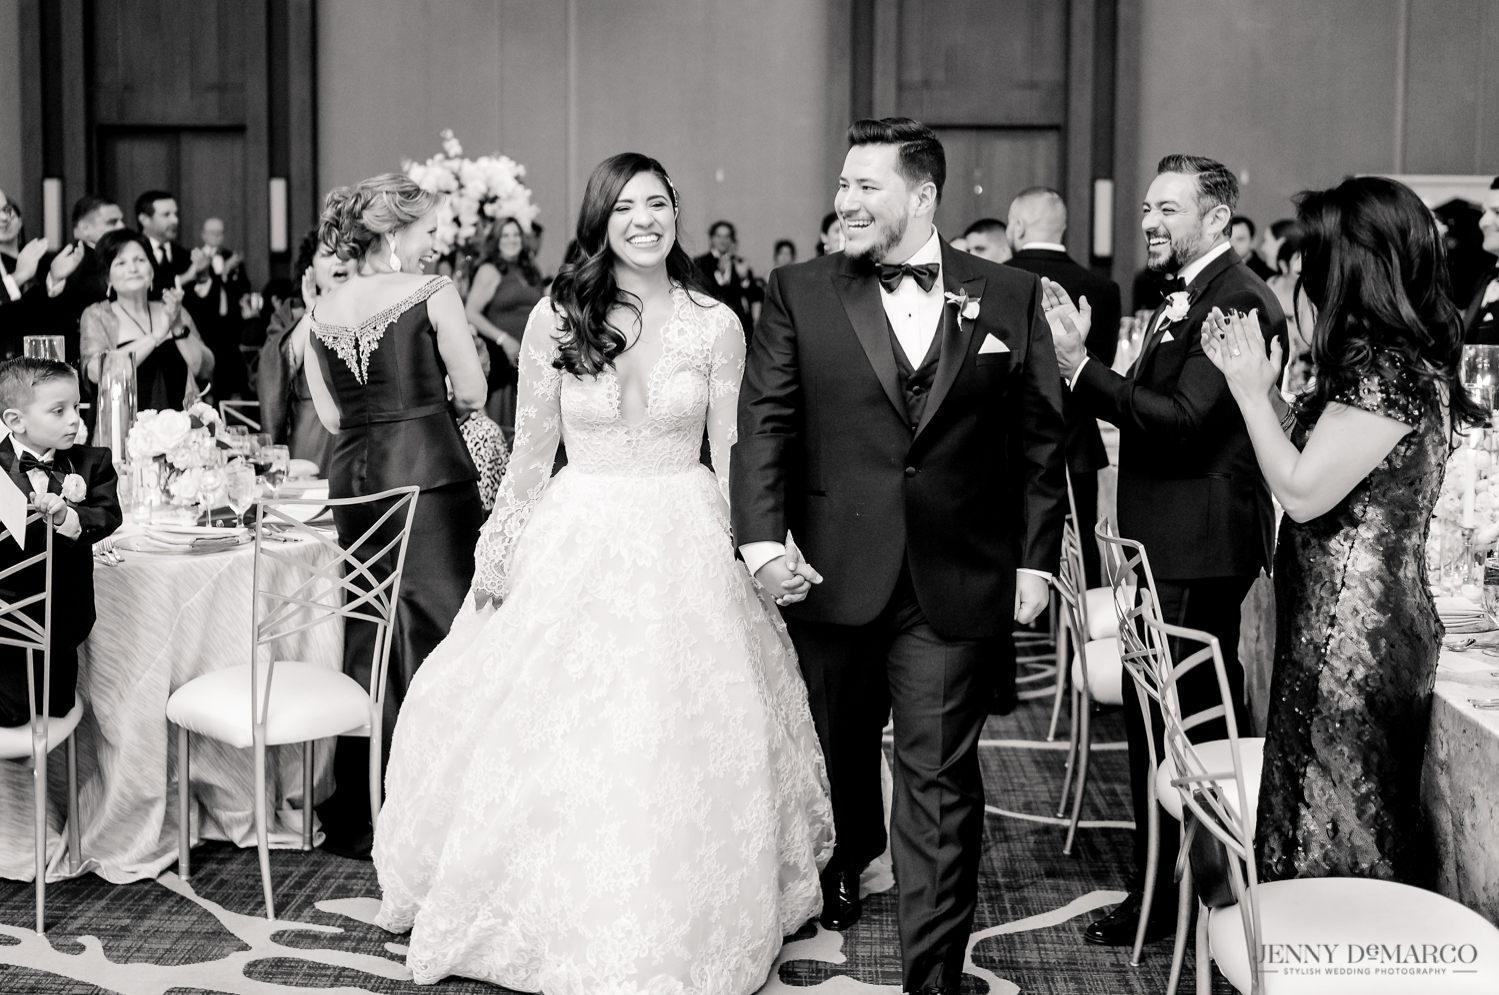 bride and groom walking into the reception smiling as all the guests clap